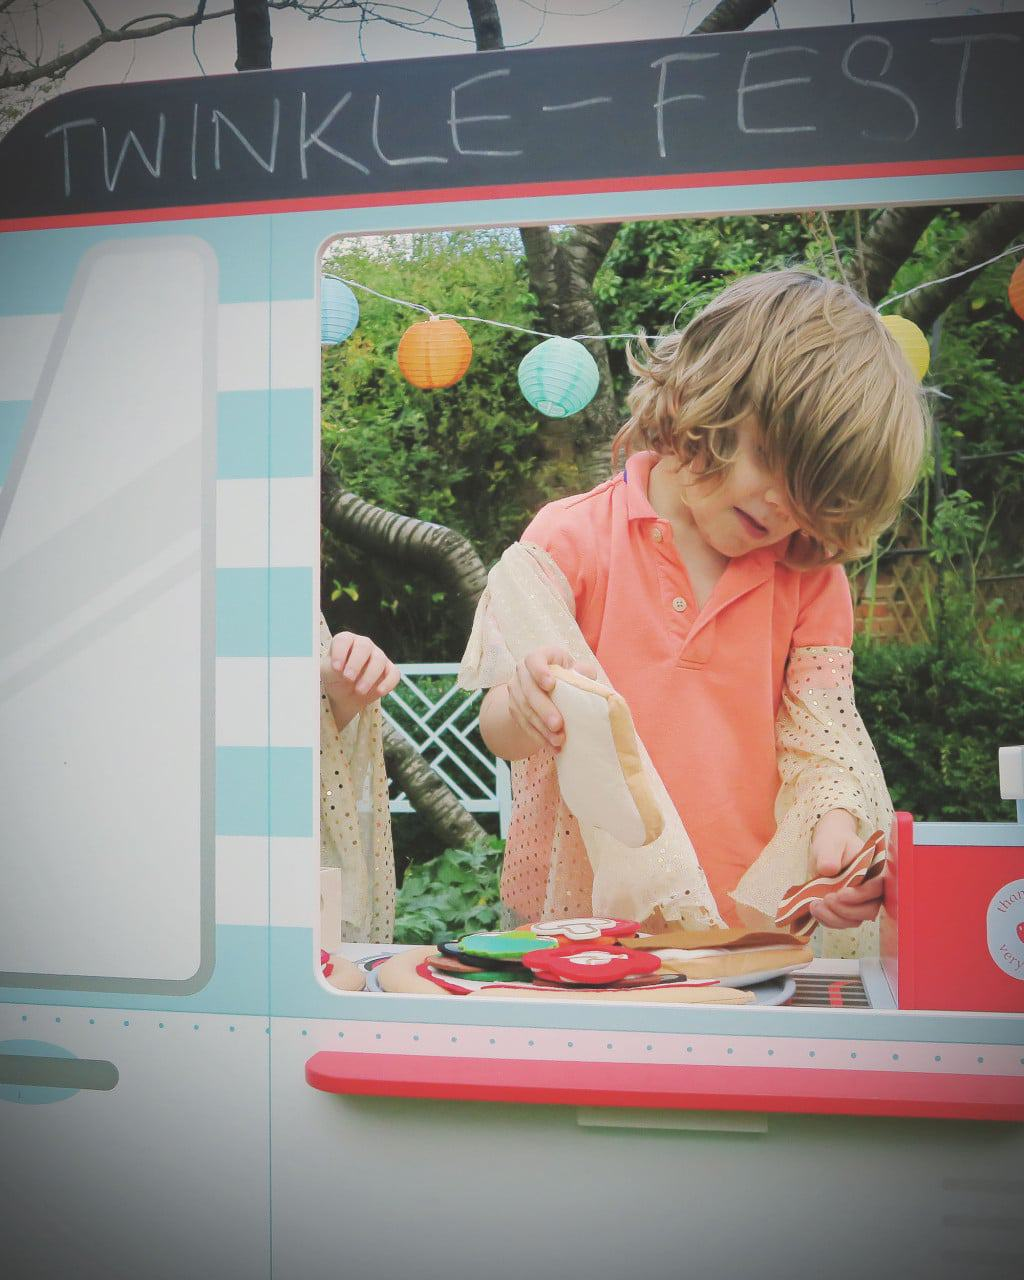 The GLTC festival food van / play kitchen — perfect for imaginative play